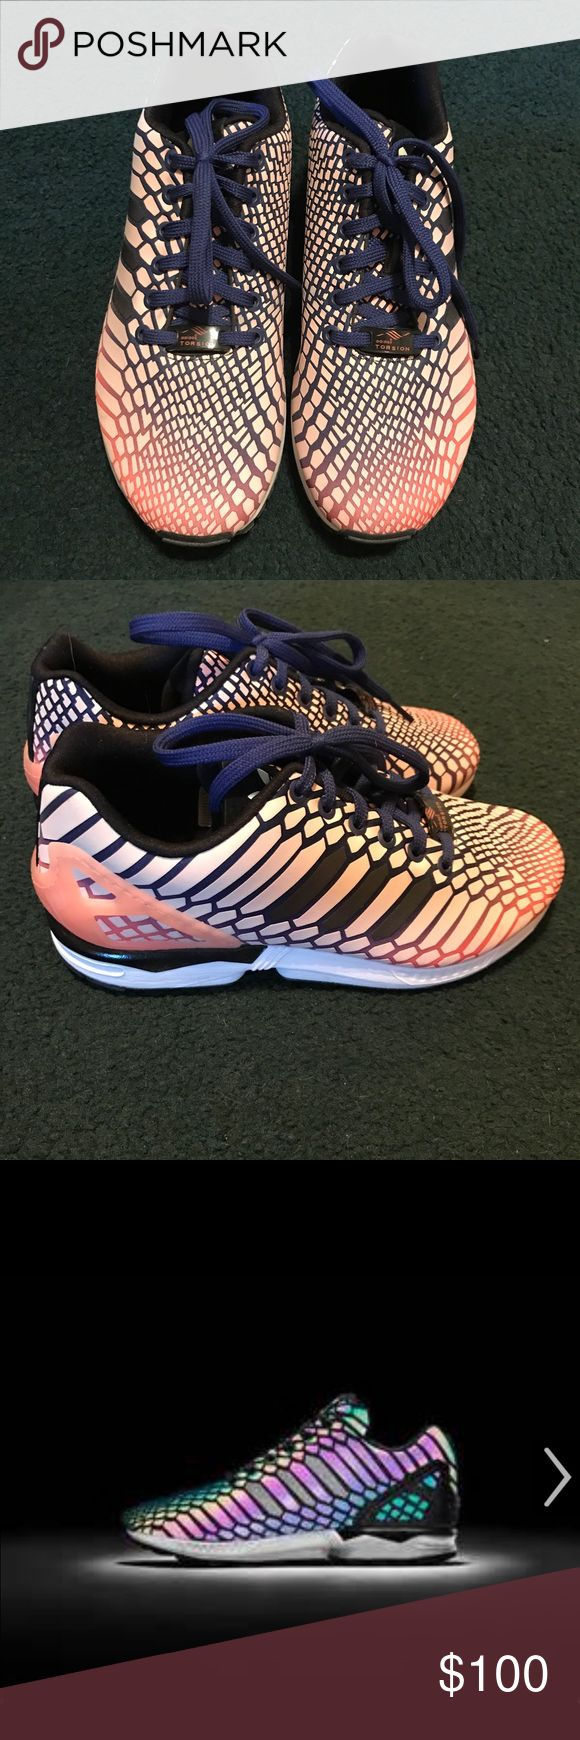 Women's Adidas Flux light up shoes size 8 Women's Adidas Flux shoes size 8. These light up in the dark when exposed to light. Quite the show stopper and attention getter. Worn once.  Very rare. No box. No trades, offers accepted. Adidas Shoes Athletic Shoes